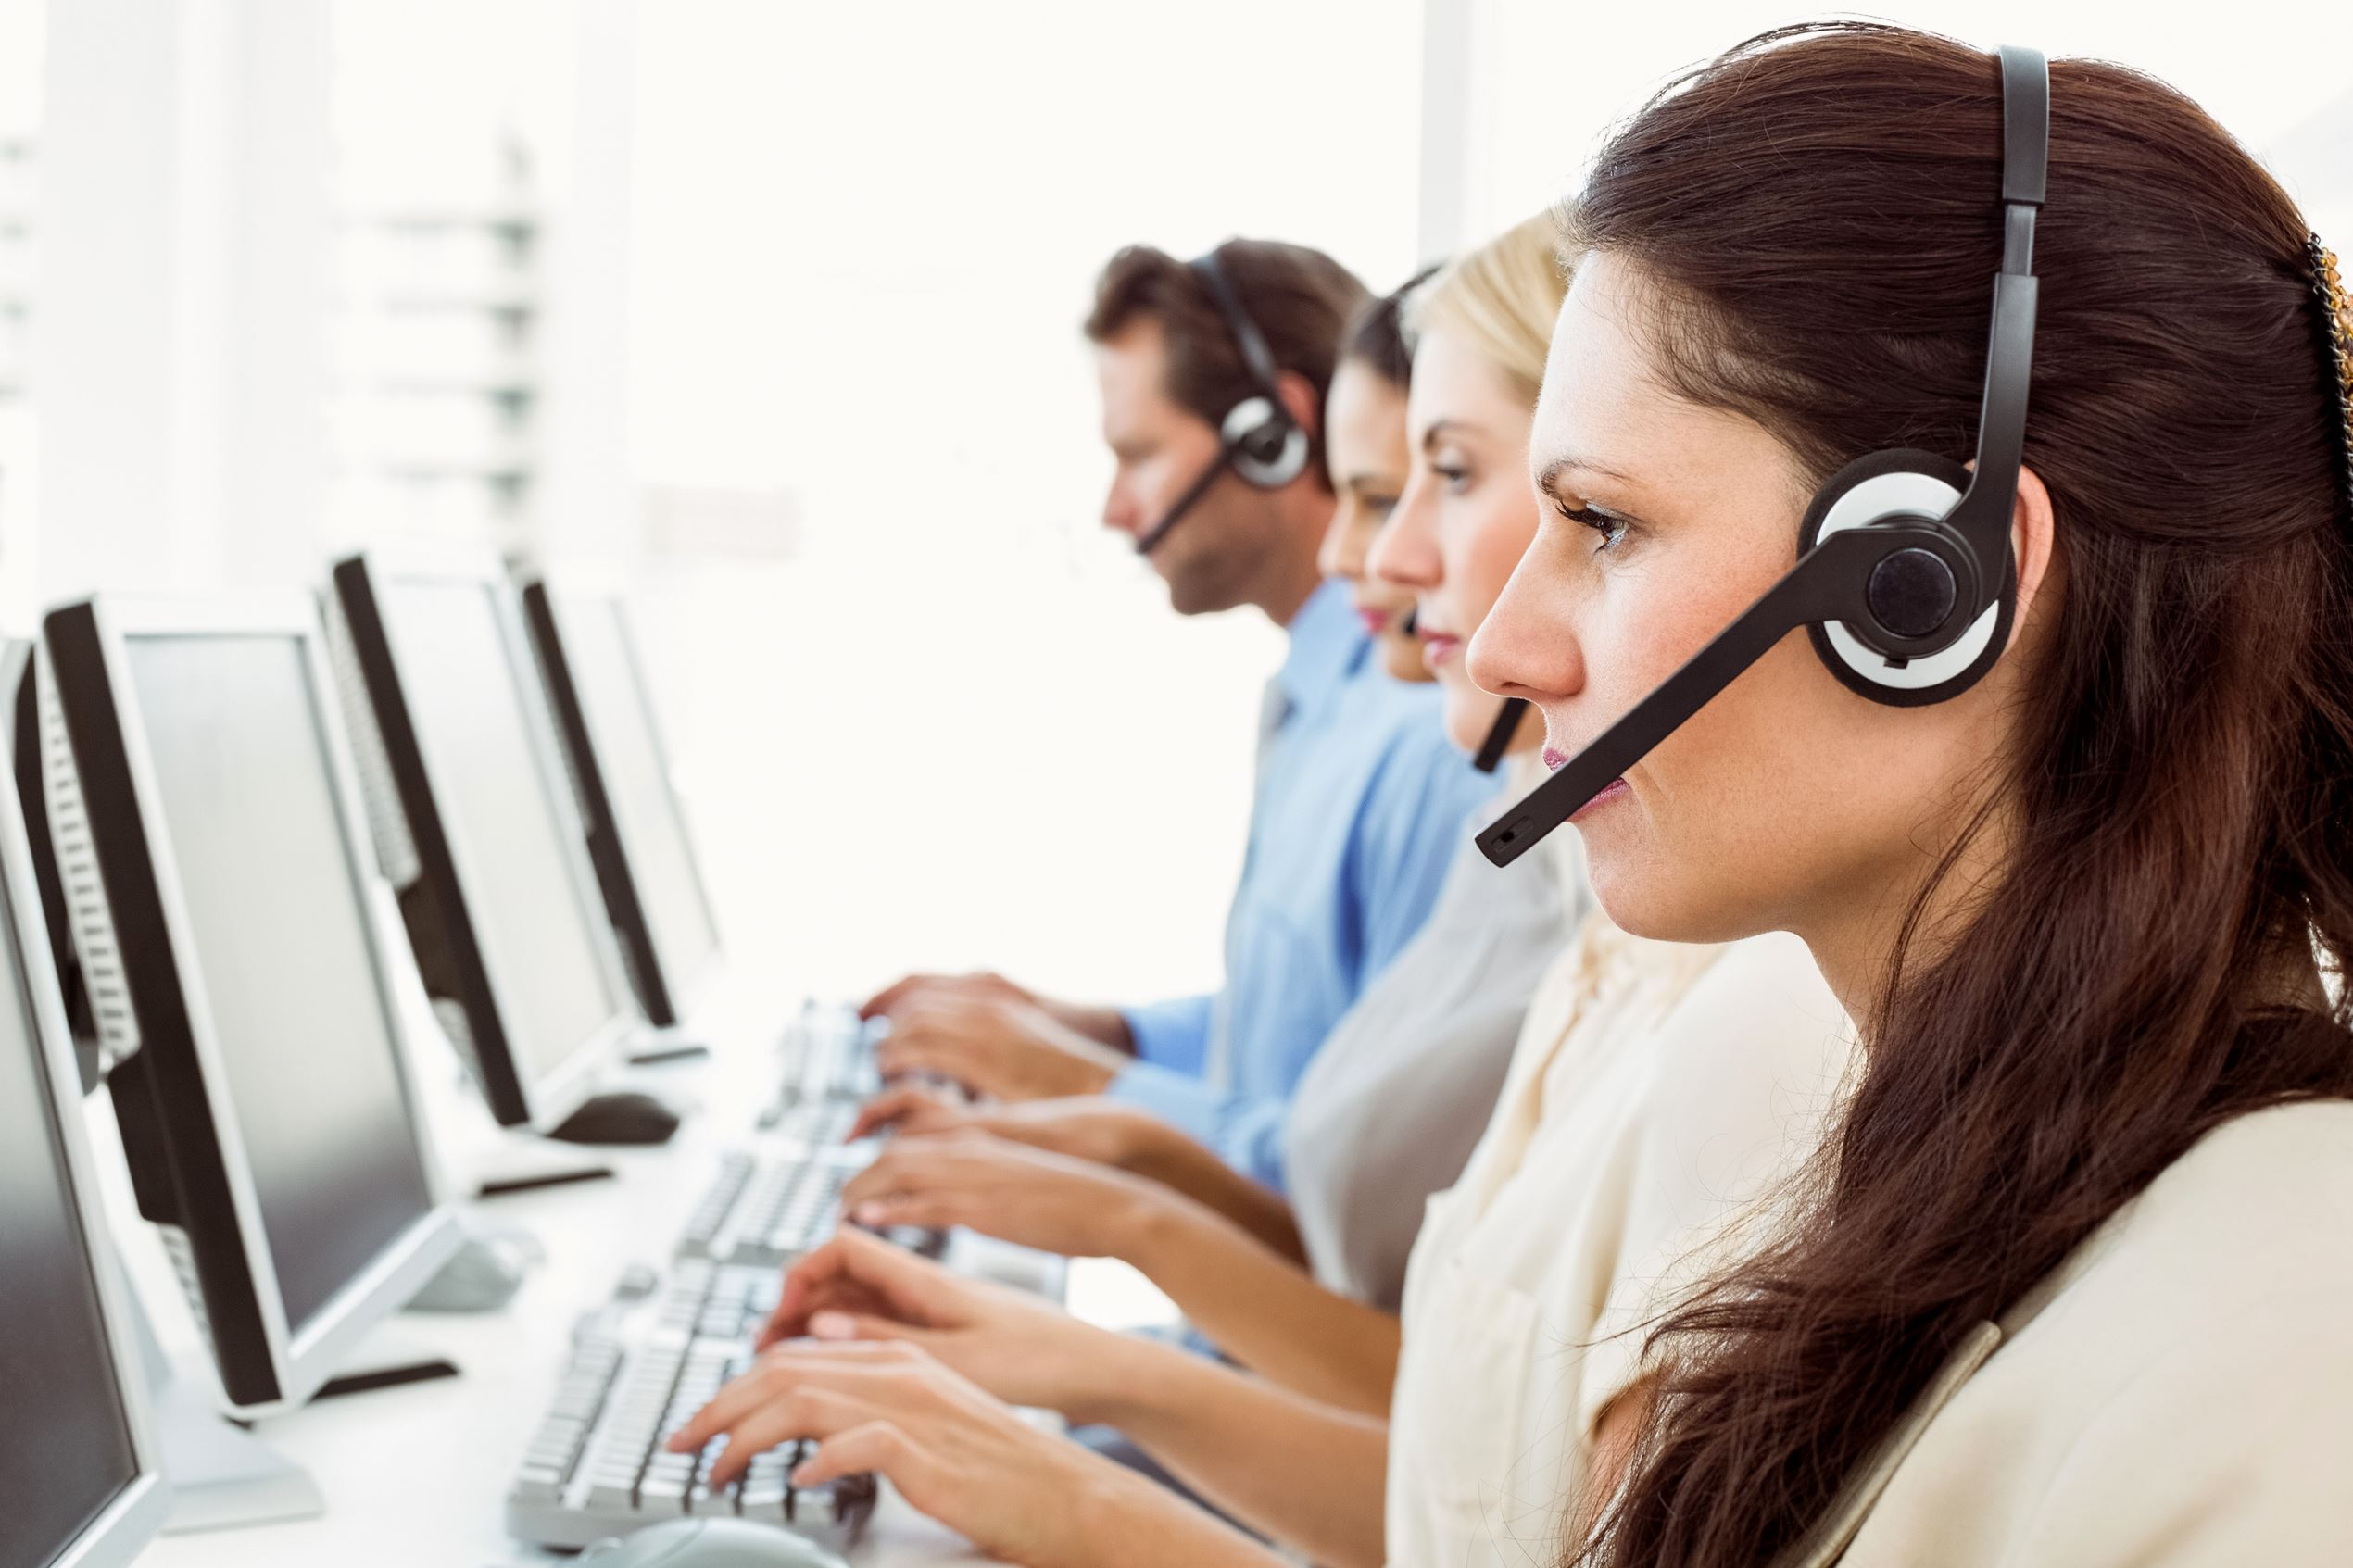 Customer Service representatives on the phone. Getty Images/iStockphoto